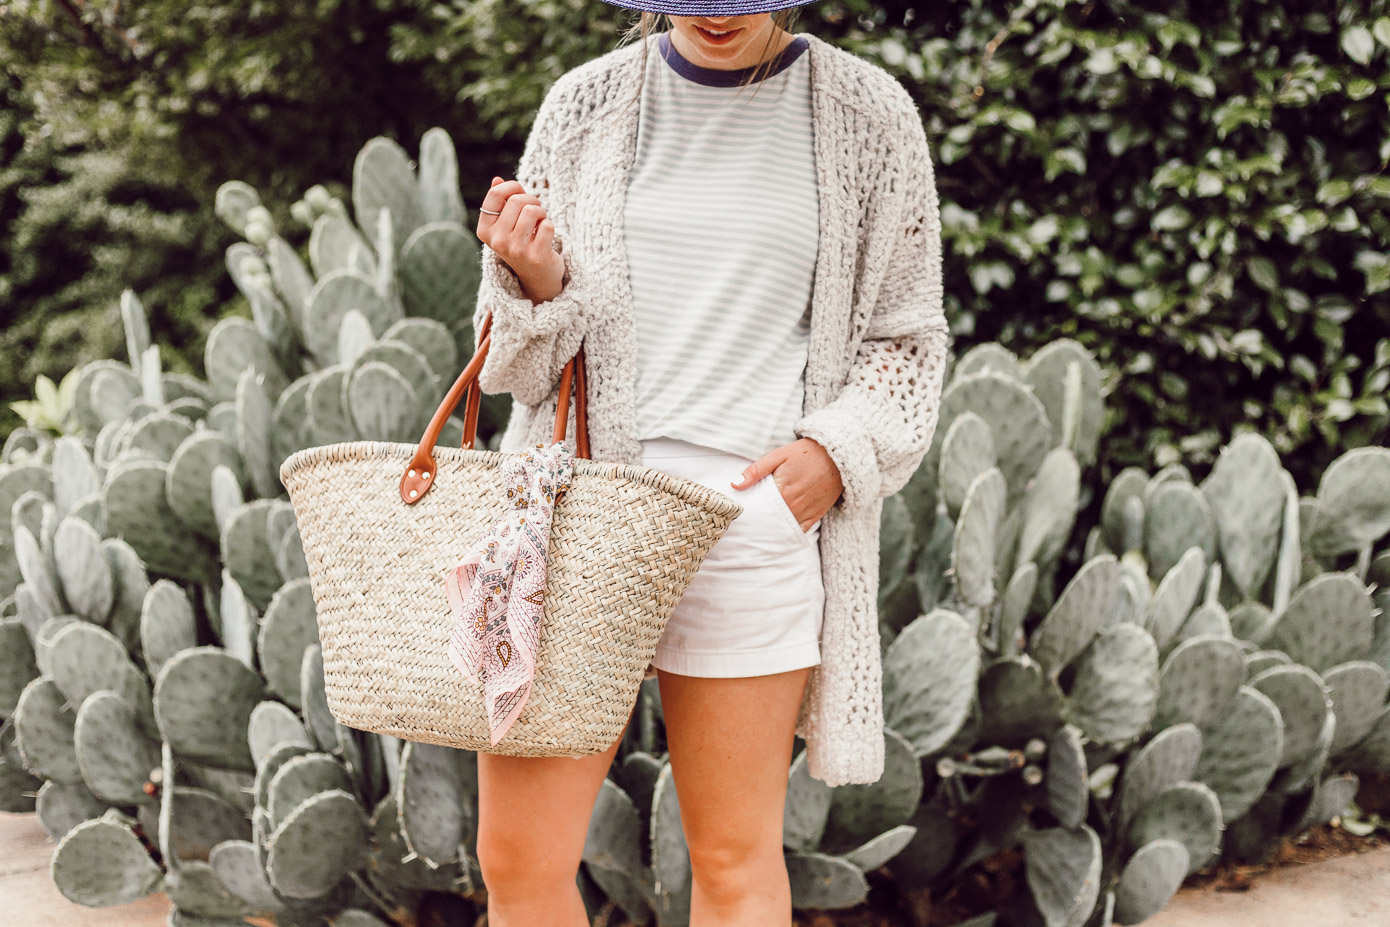 Navy Straw Hat, Free People Saturday Morning Cardigan, Preppy Striped Tee | Casual Late Summer Outfit Idea featured on Louella Reese